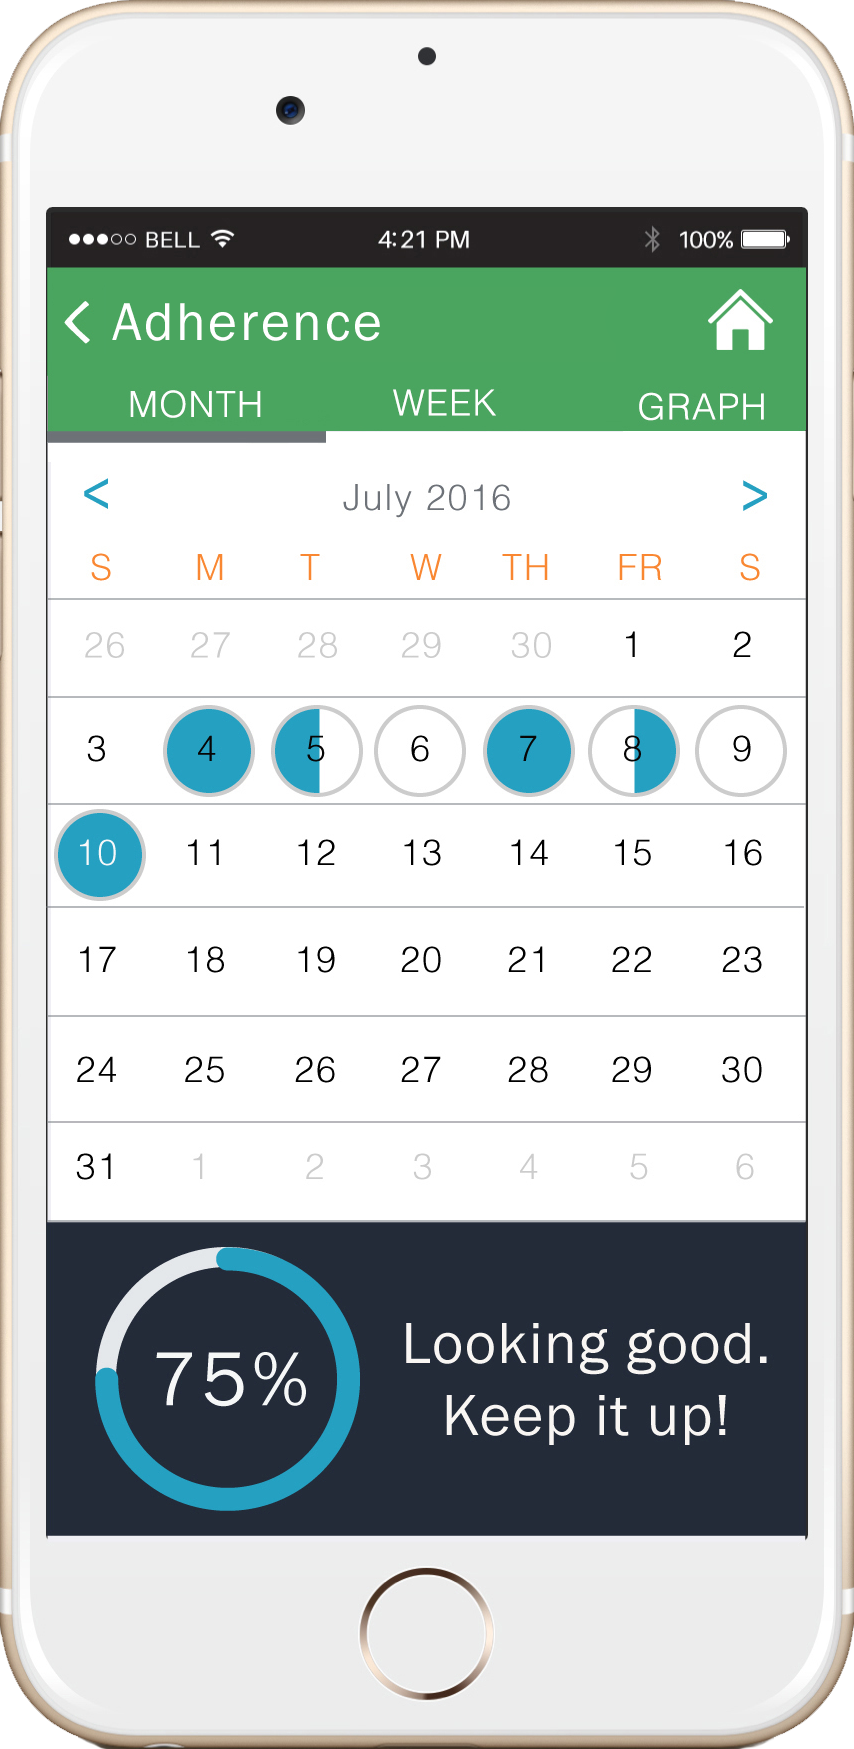 - The calendar view shows medication adherence dailyto encourage self-care and behavior change.